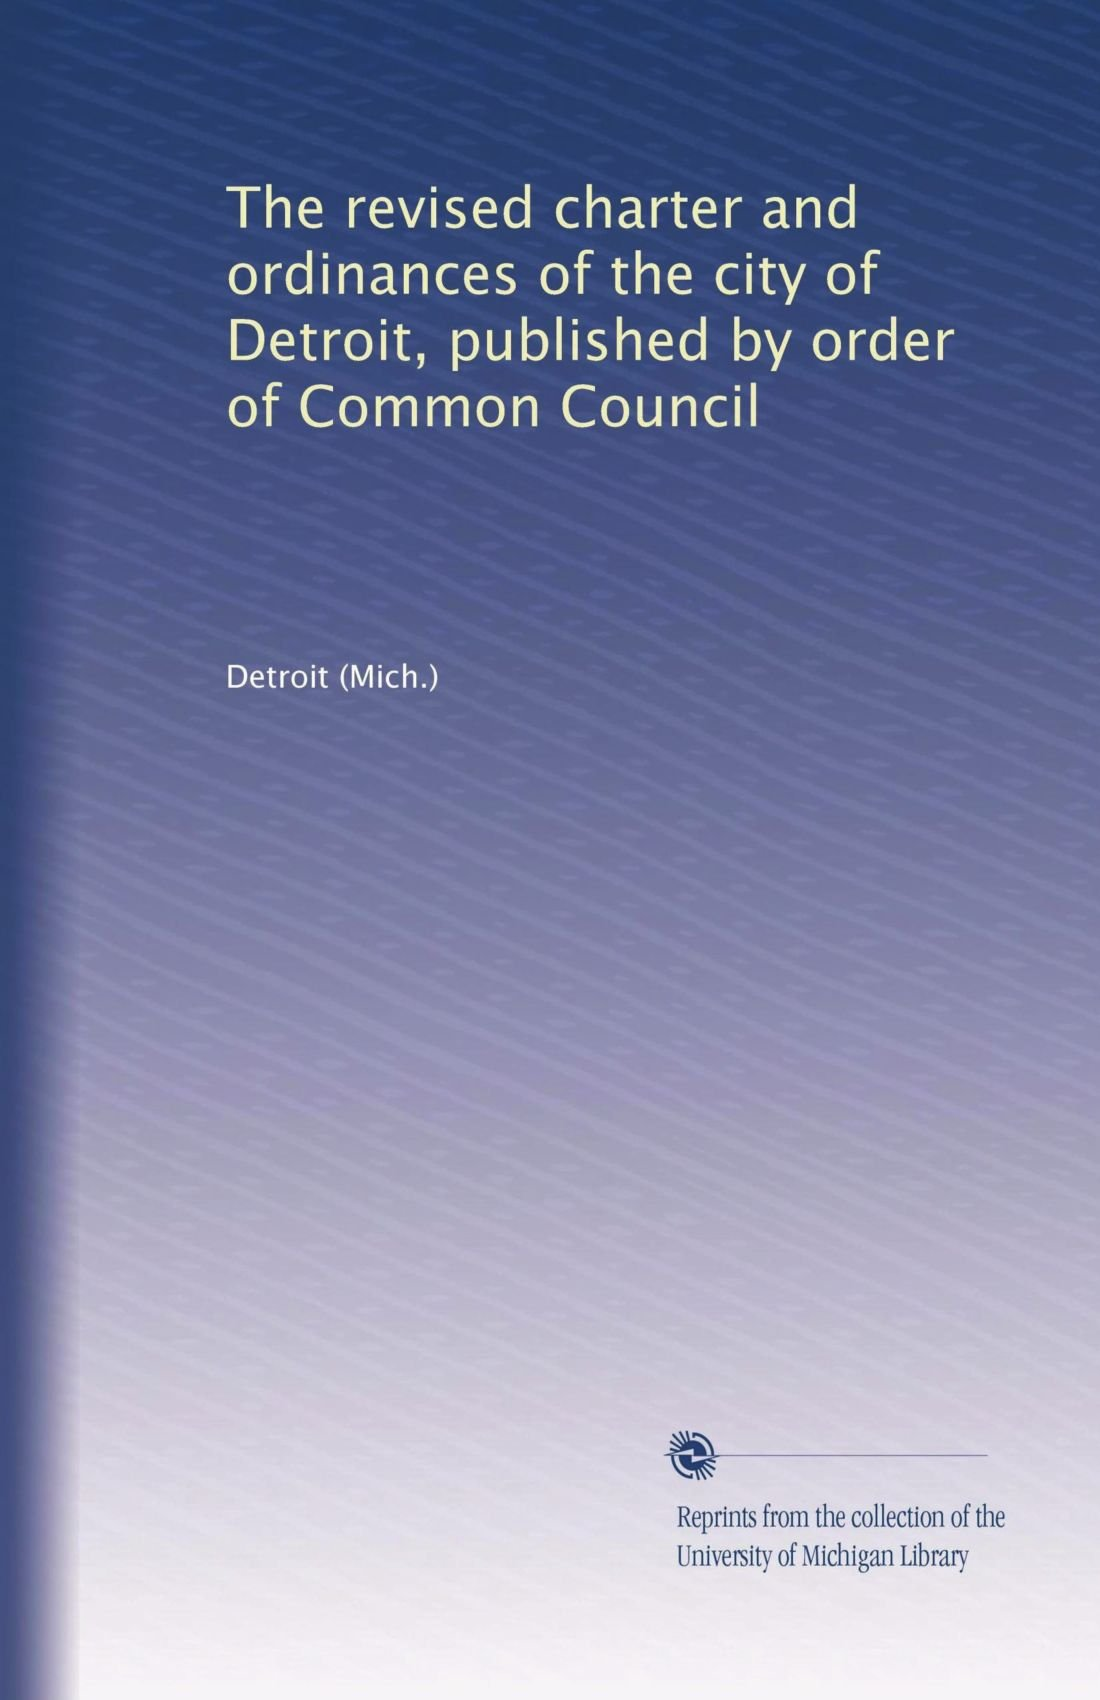 Download The revised charter and ordinances of the city of Detroit, published by order of Common Council ebook